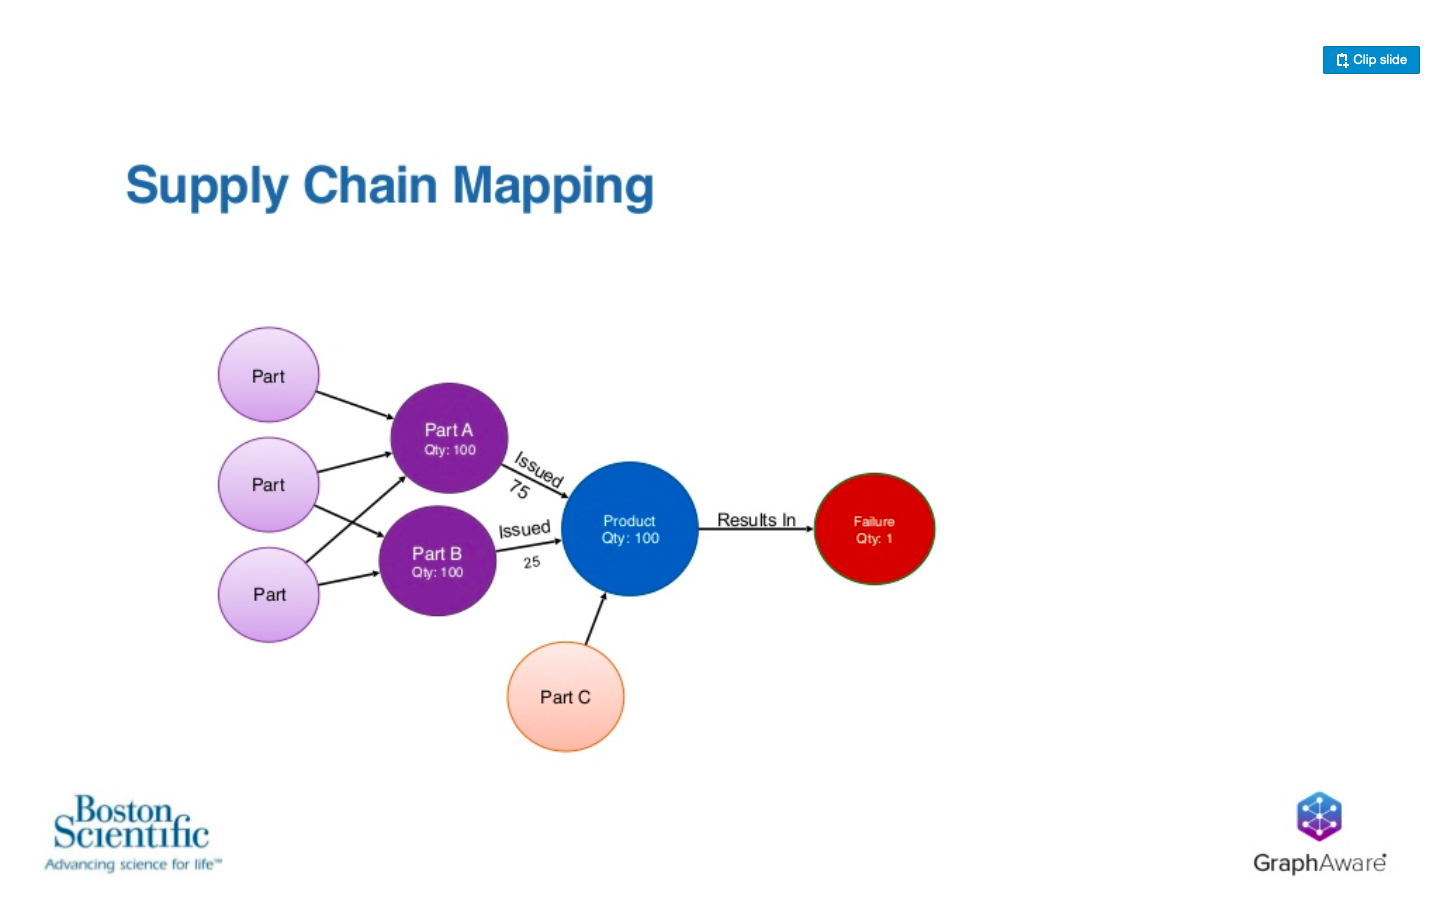 Supply chain mapping Boston scientific graph aware